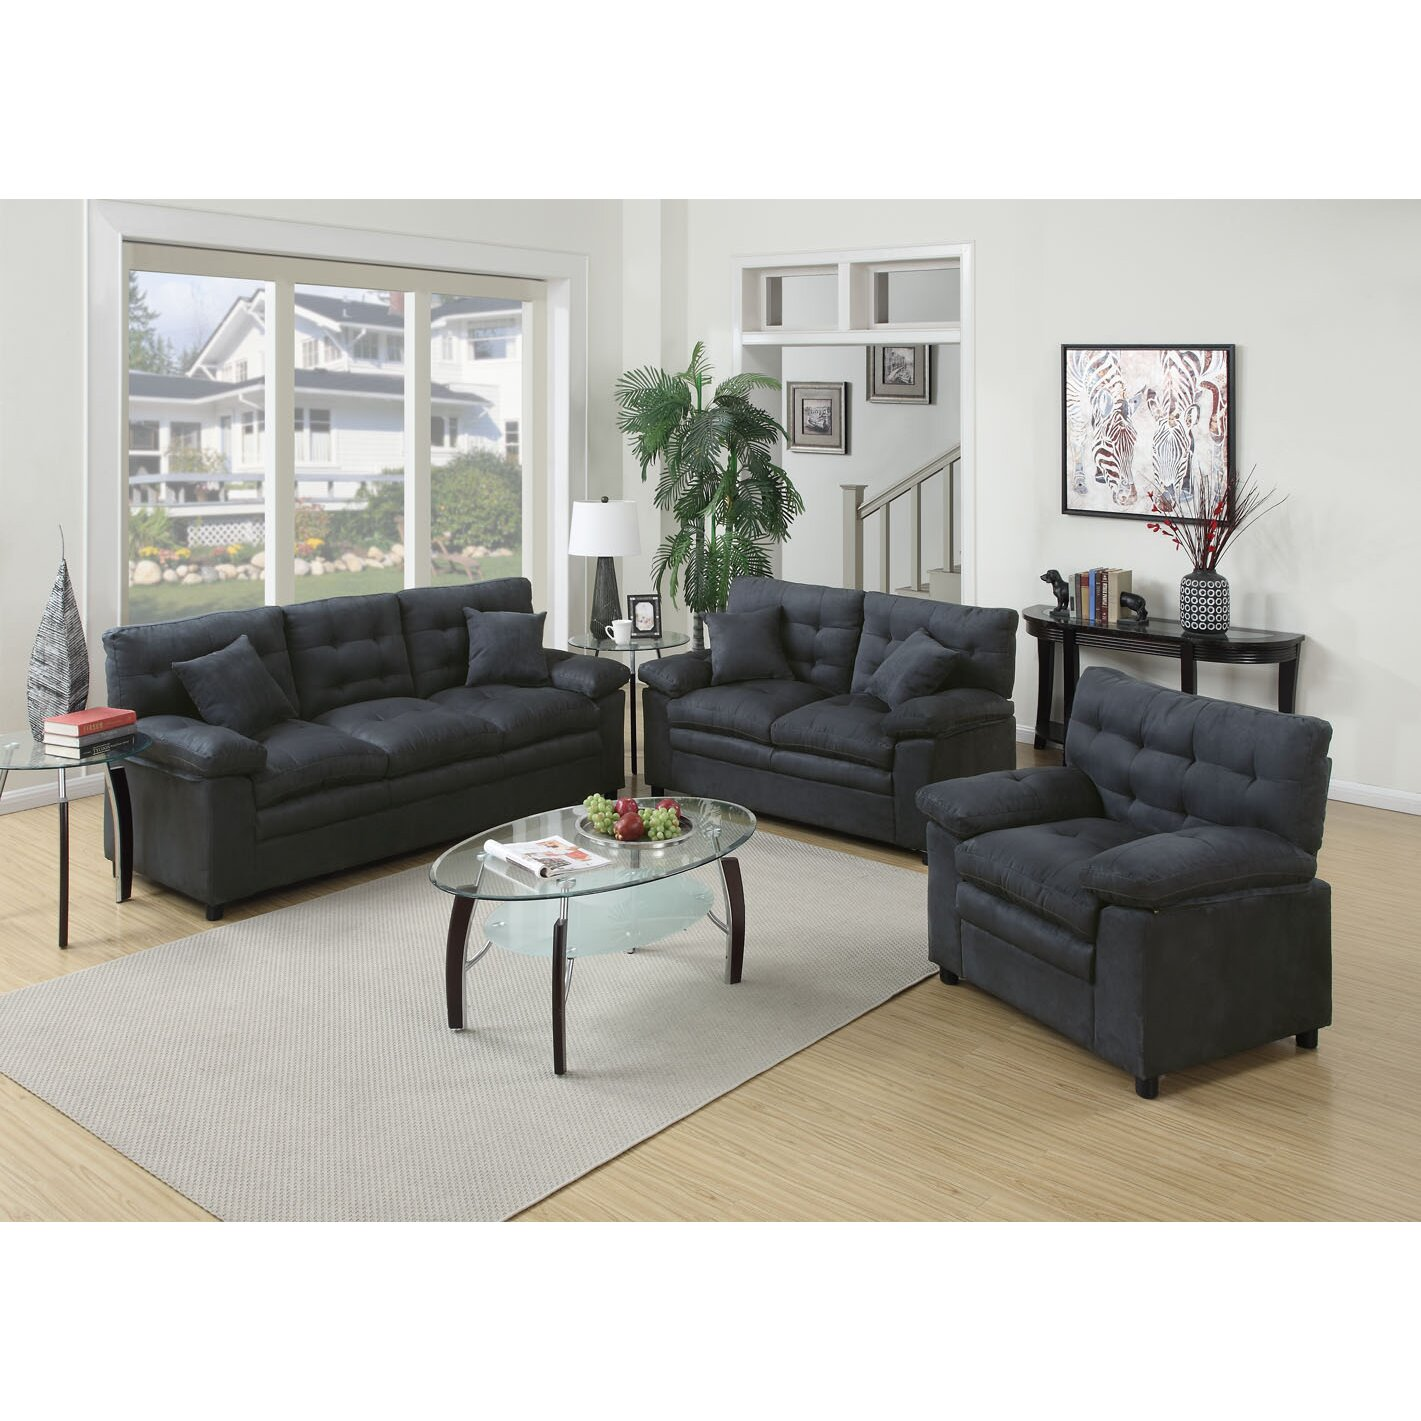 Poundex bobkona colona 3 piece living room set reviews for Living room 3